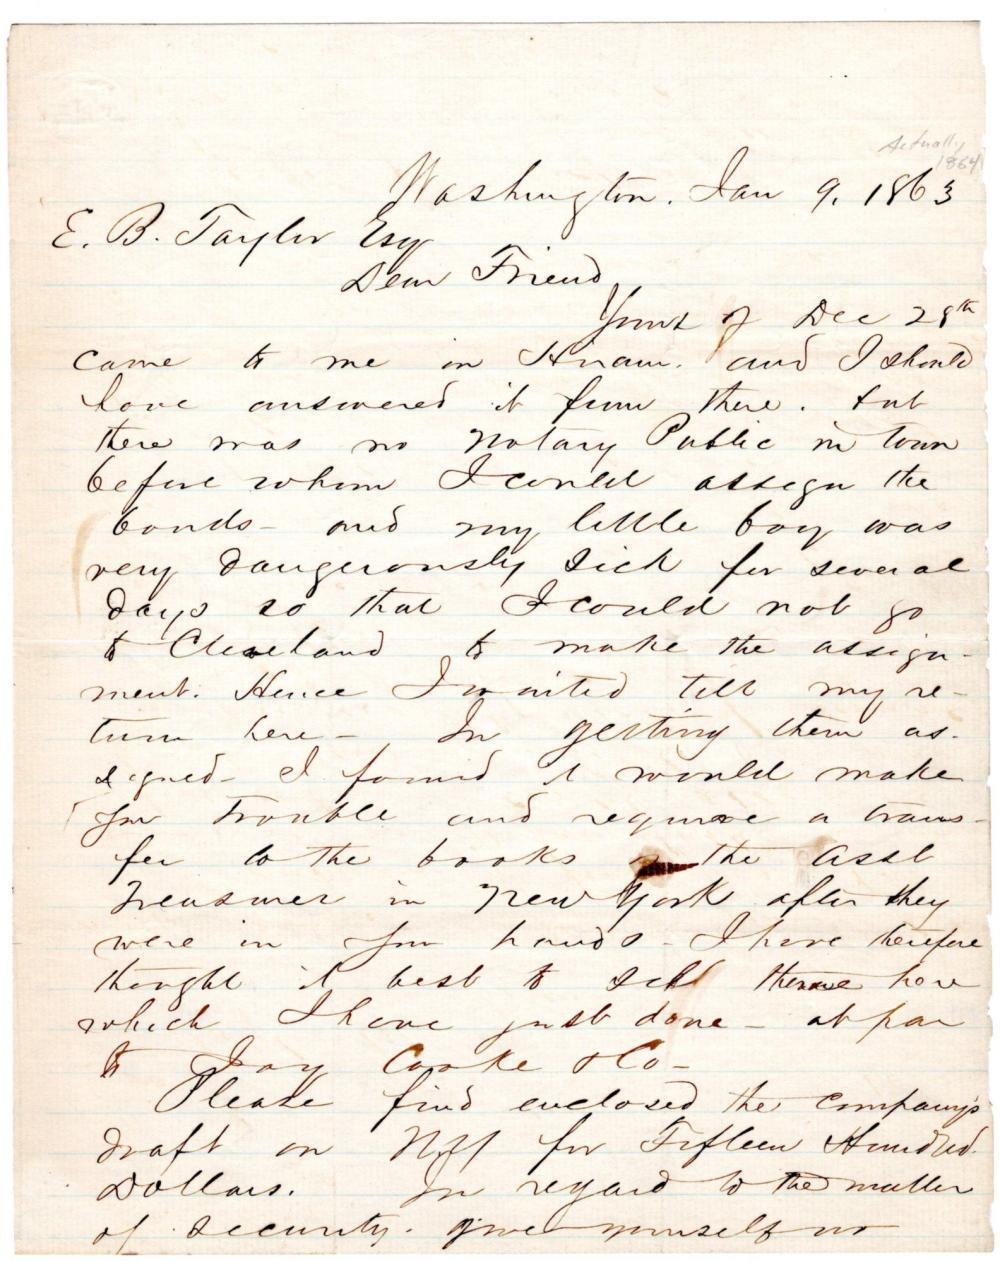 James A. Garfield A Rare War-Dated Heartfelt Letter from a Grieving to His Friend and Successor in Congress